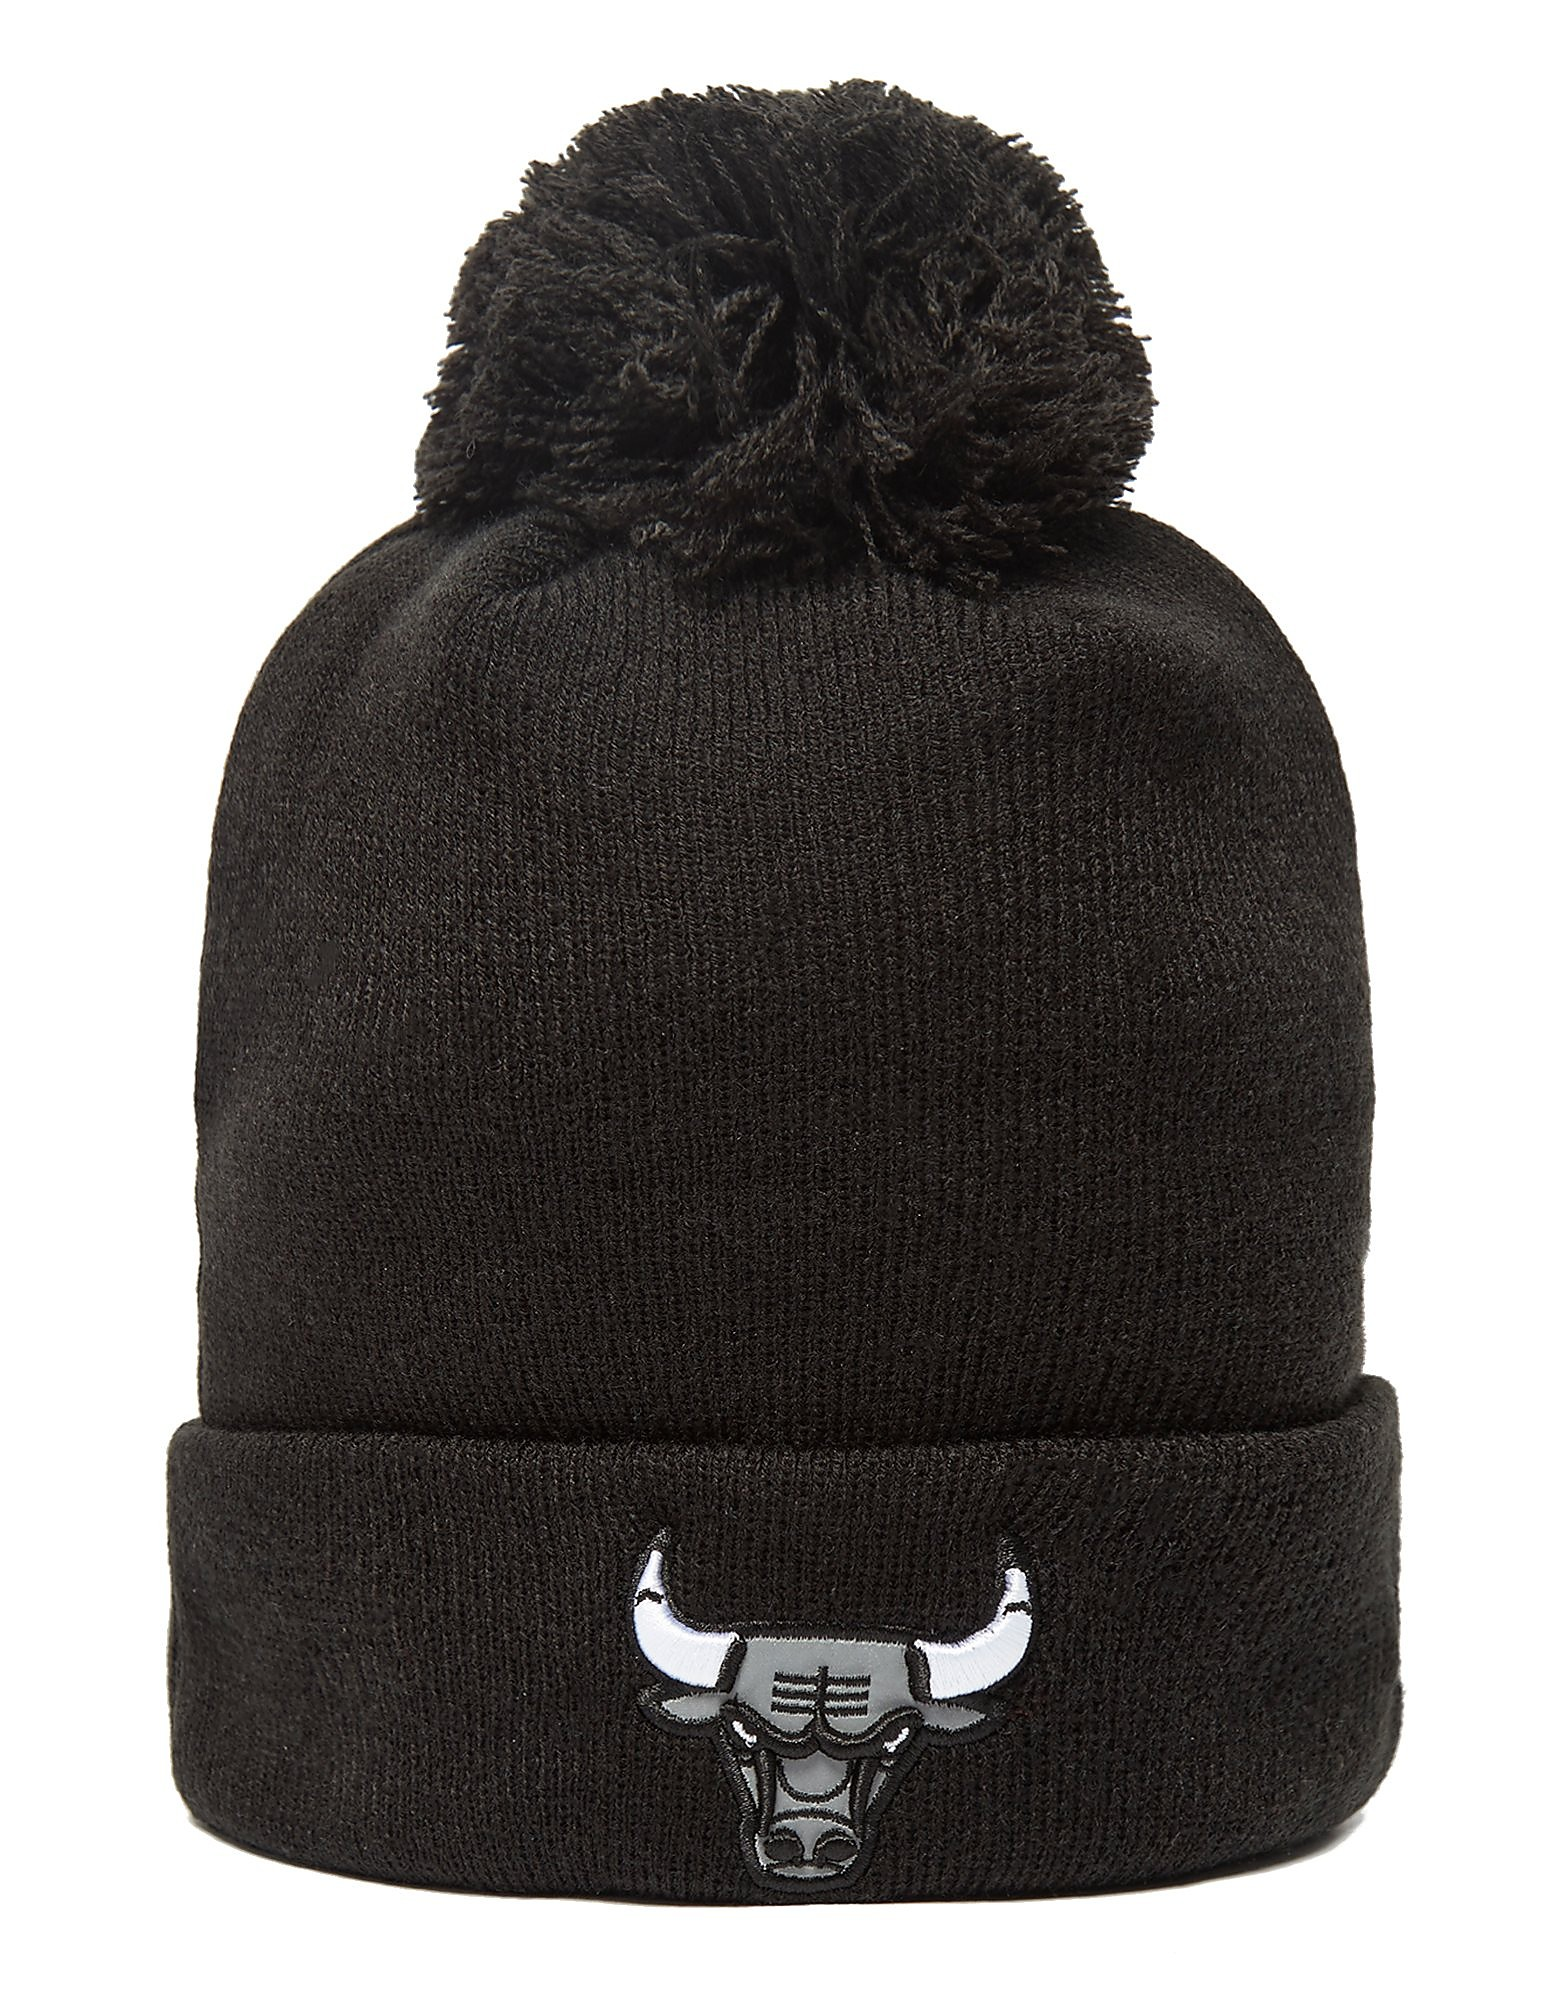 New Era NBA Chicago Bulls Pom Beanie